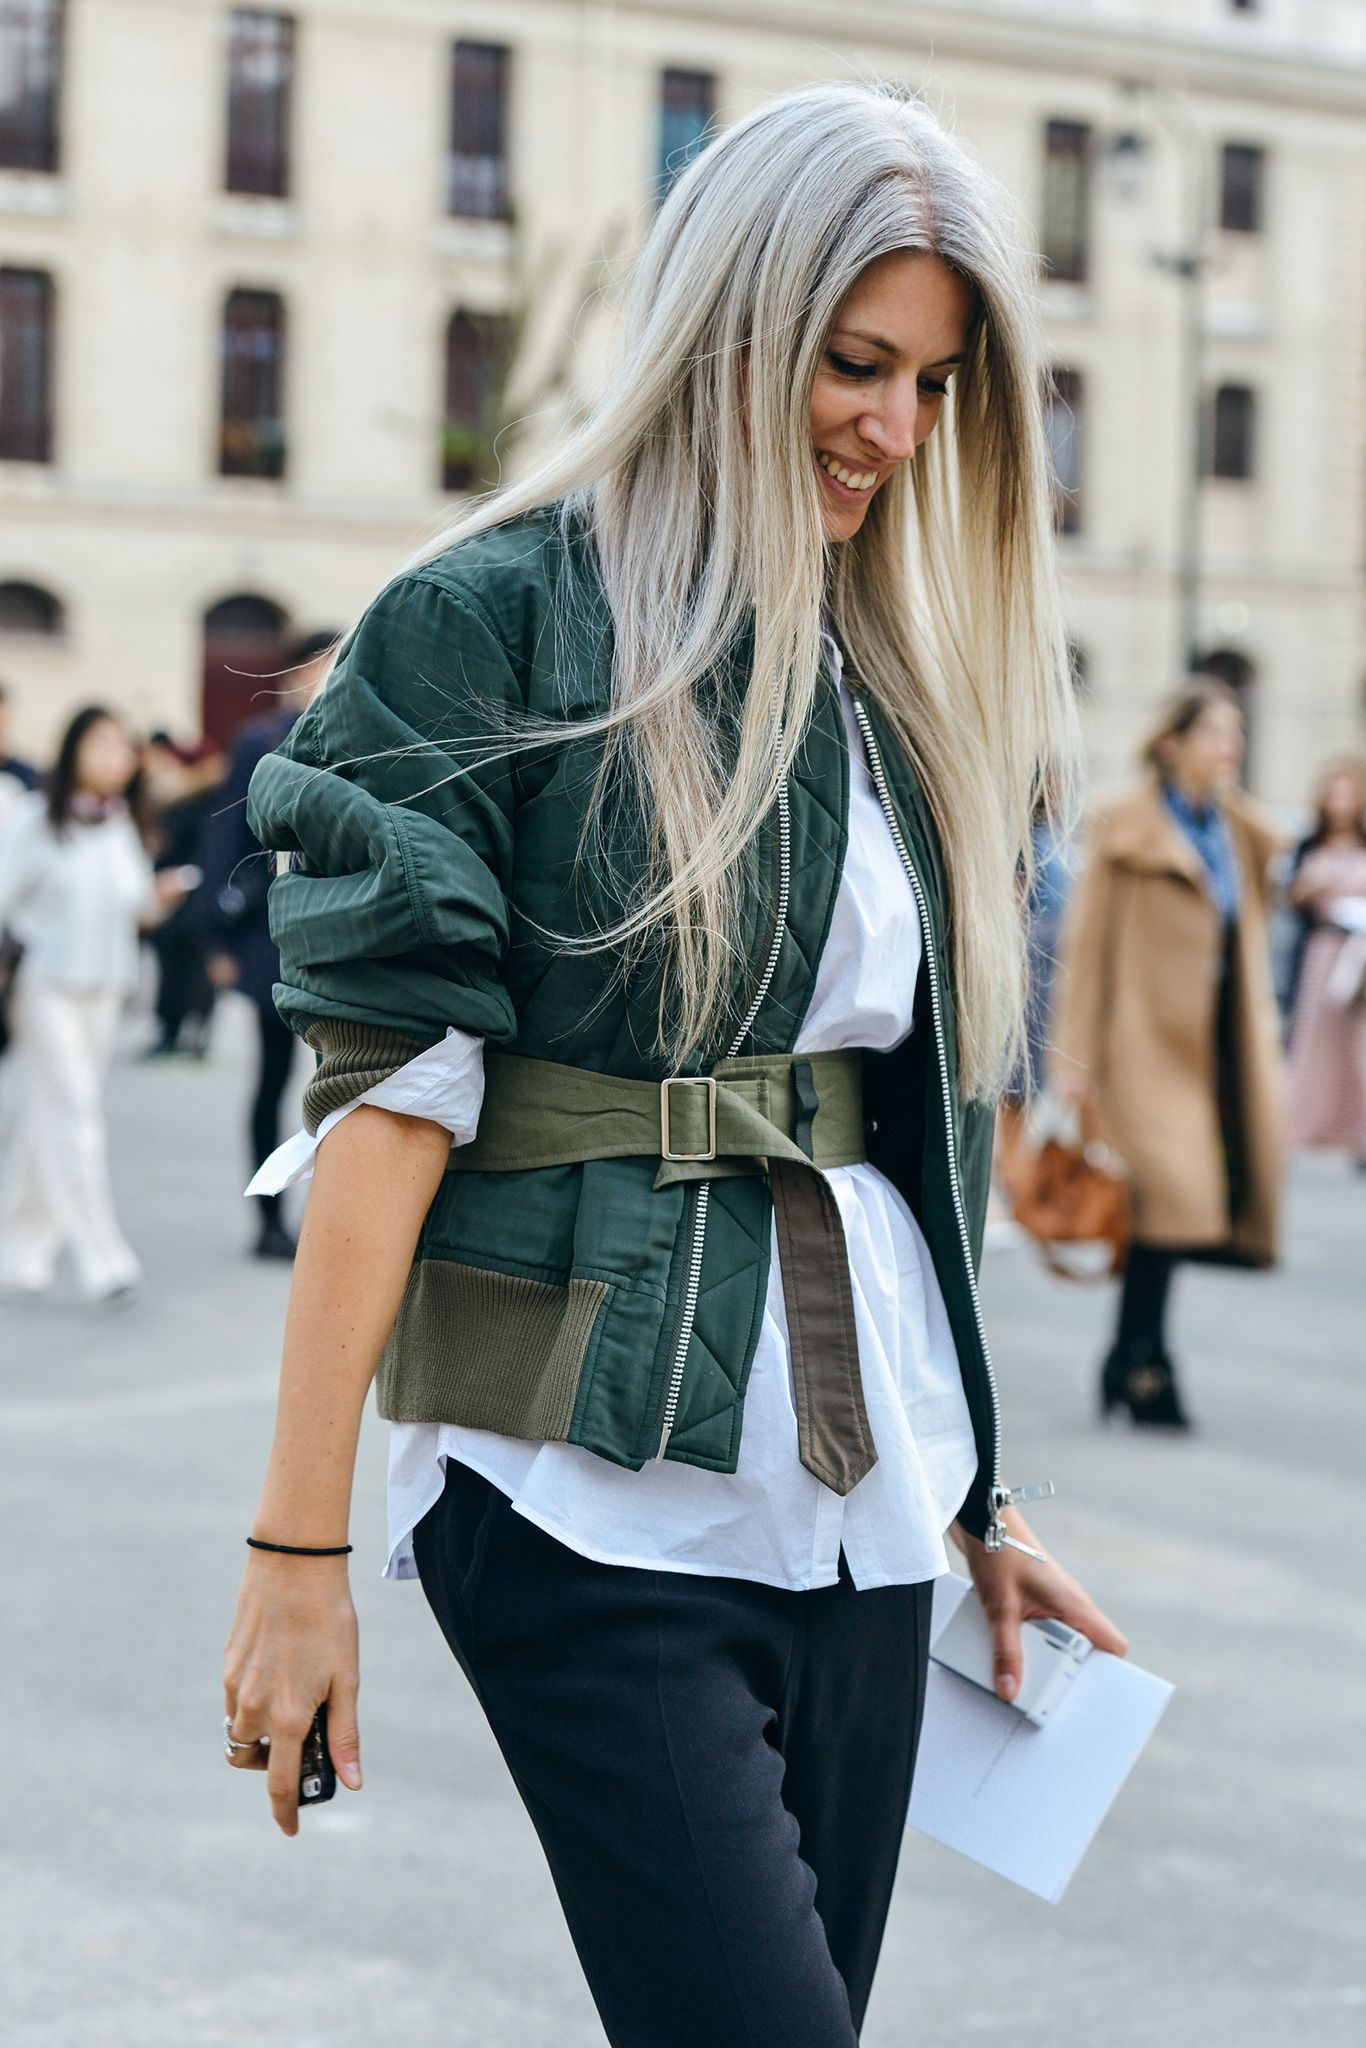 How To Wear A Bomber Jacket Like A Street Style Star Laiamagazine